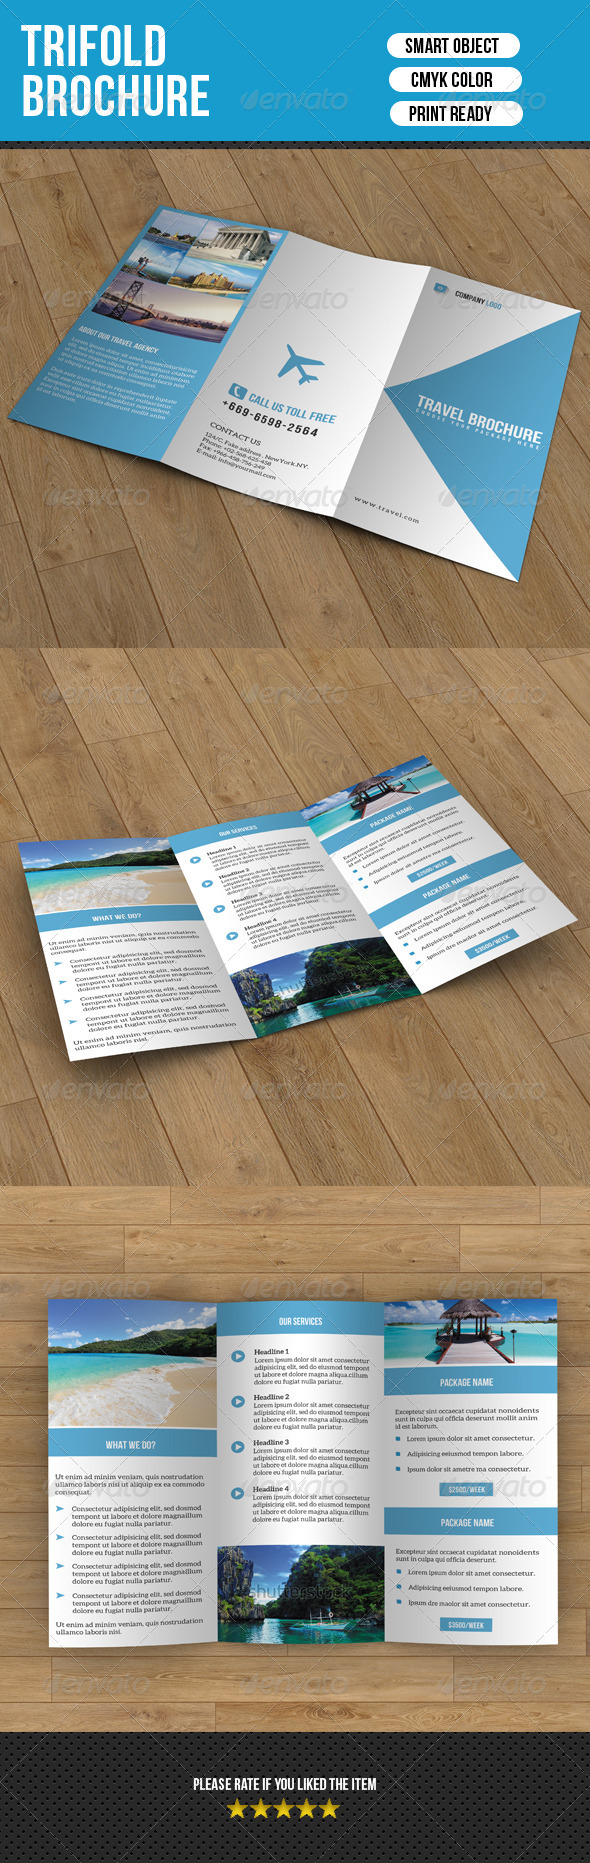 GraphicRiver Trifold Brochure-Travel 7614882